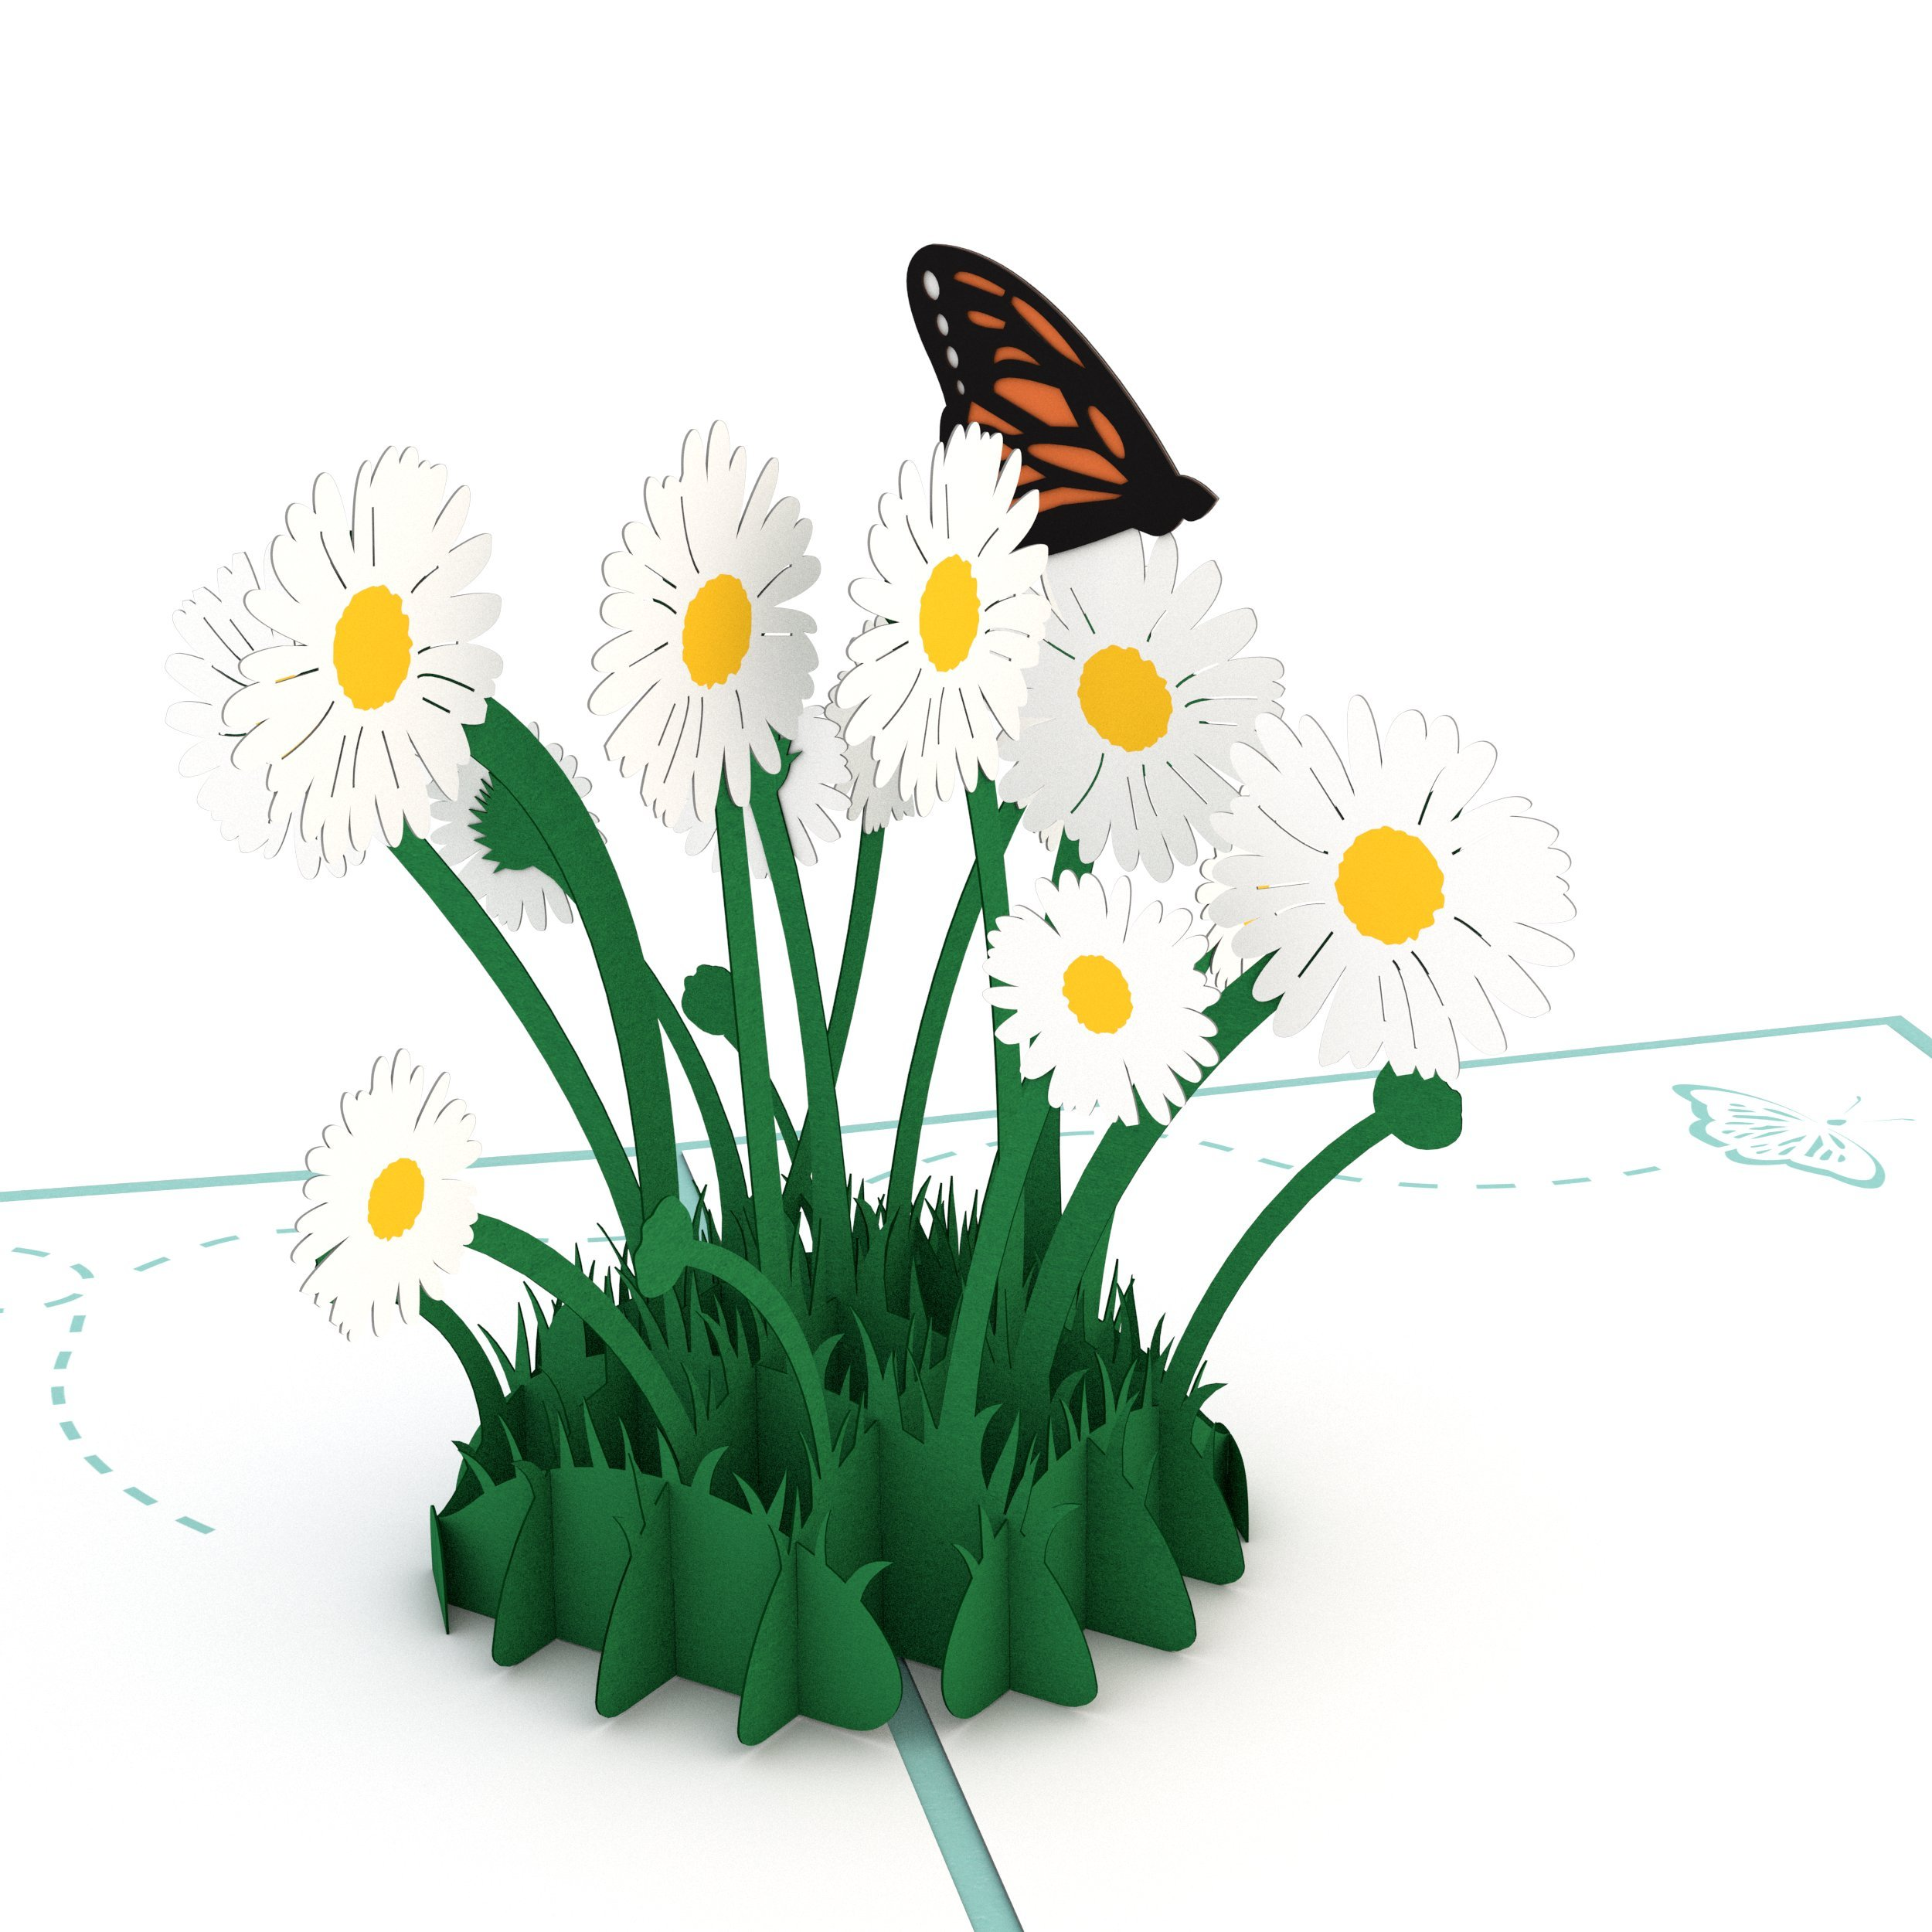 Amazon lovepop daisy patch pop up card 3d card mothers day amazon lovepop daisy patch pop up card 3d card mothers day card springtime card birthday card office products izmirmasajfo